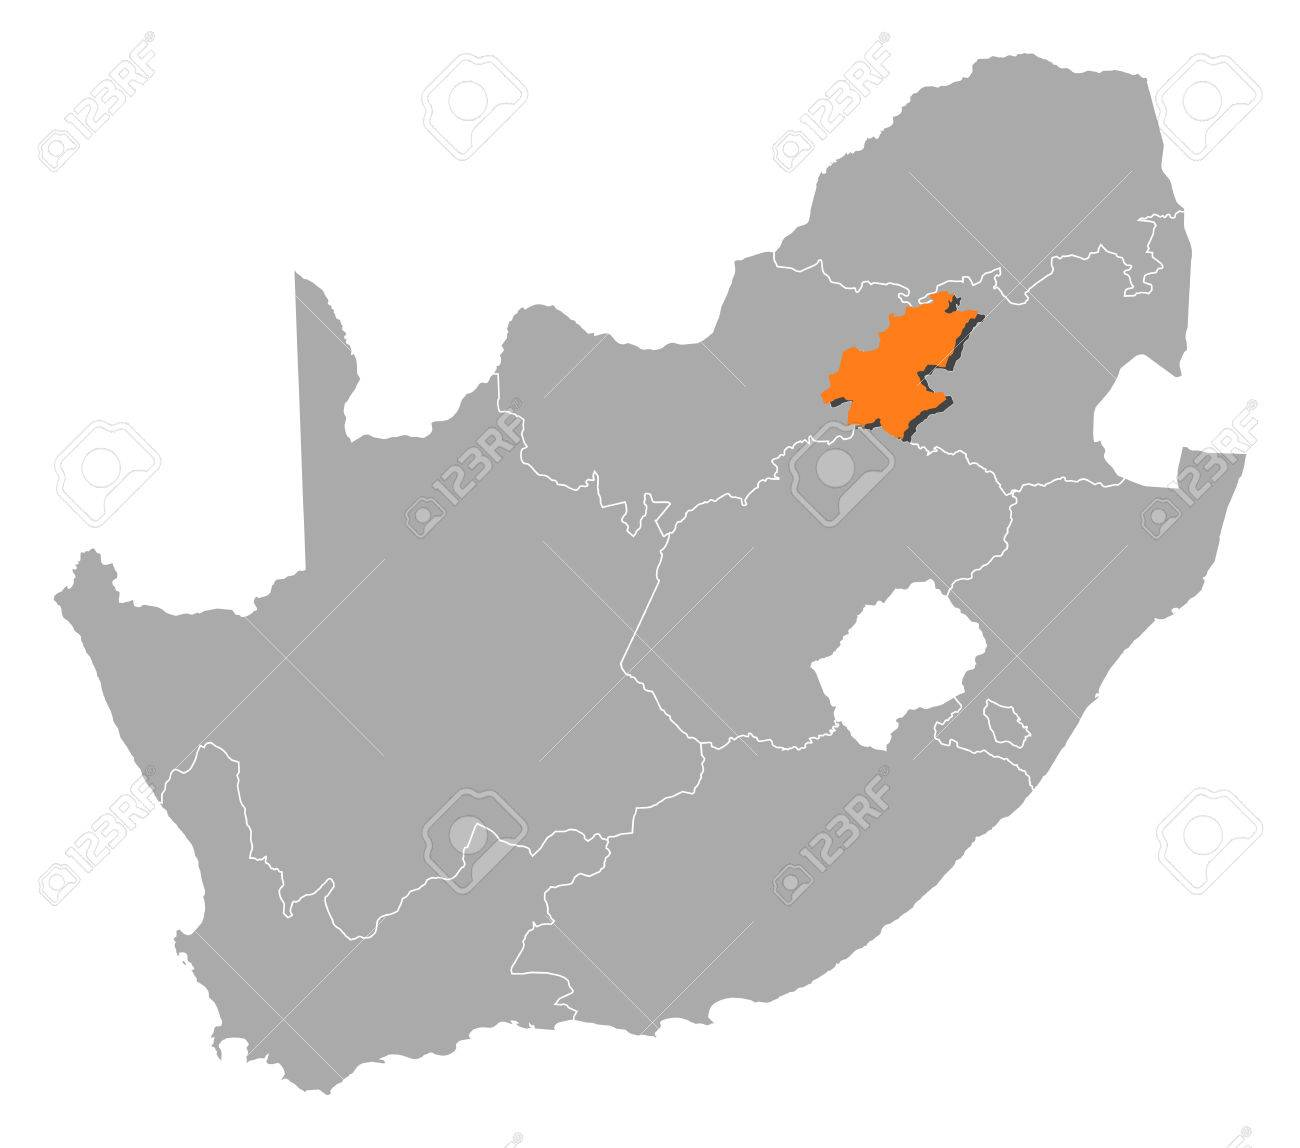 Map Of South Africa With The Provinces, Gauteng Is Highlighted